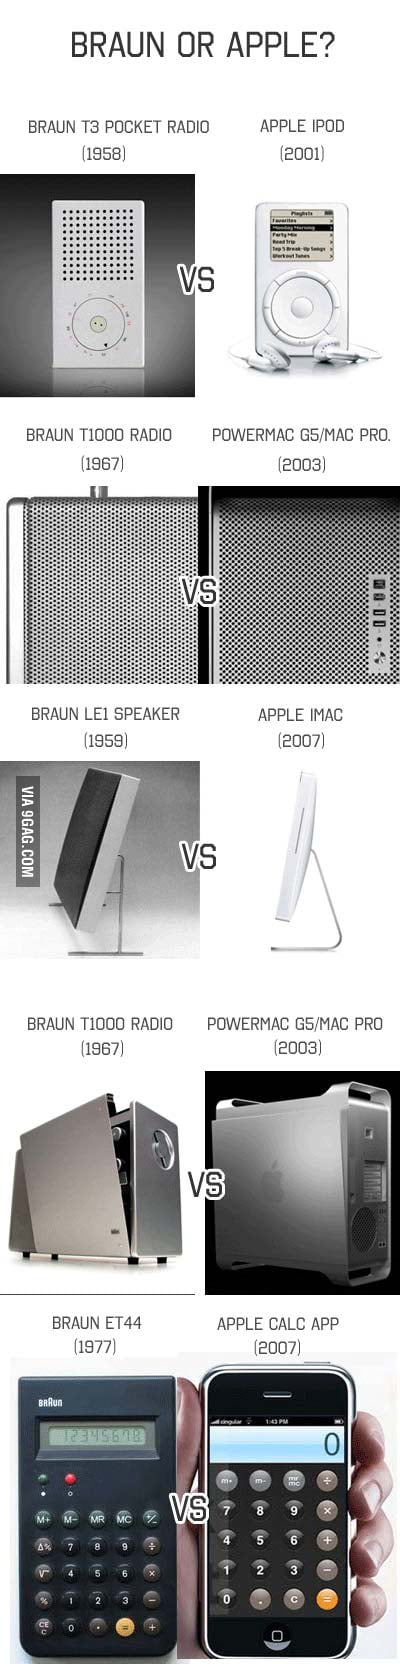 Braun vs. Apple